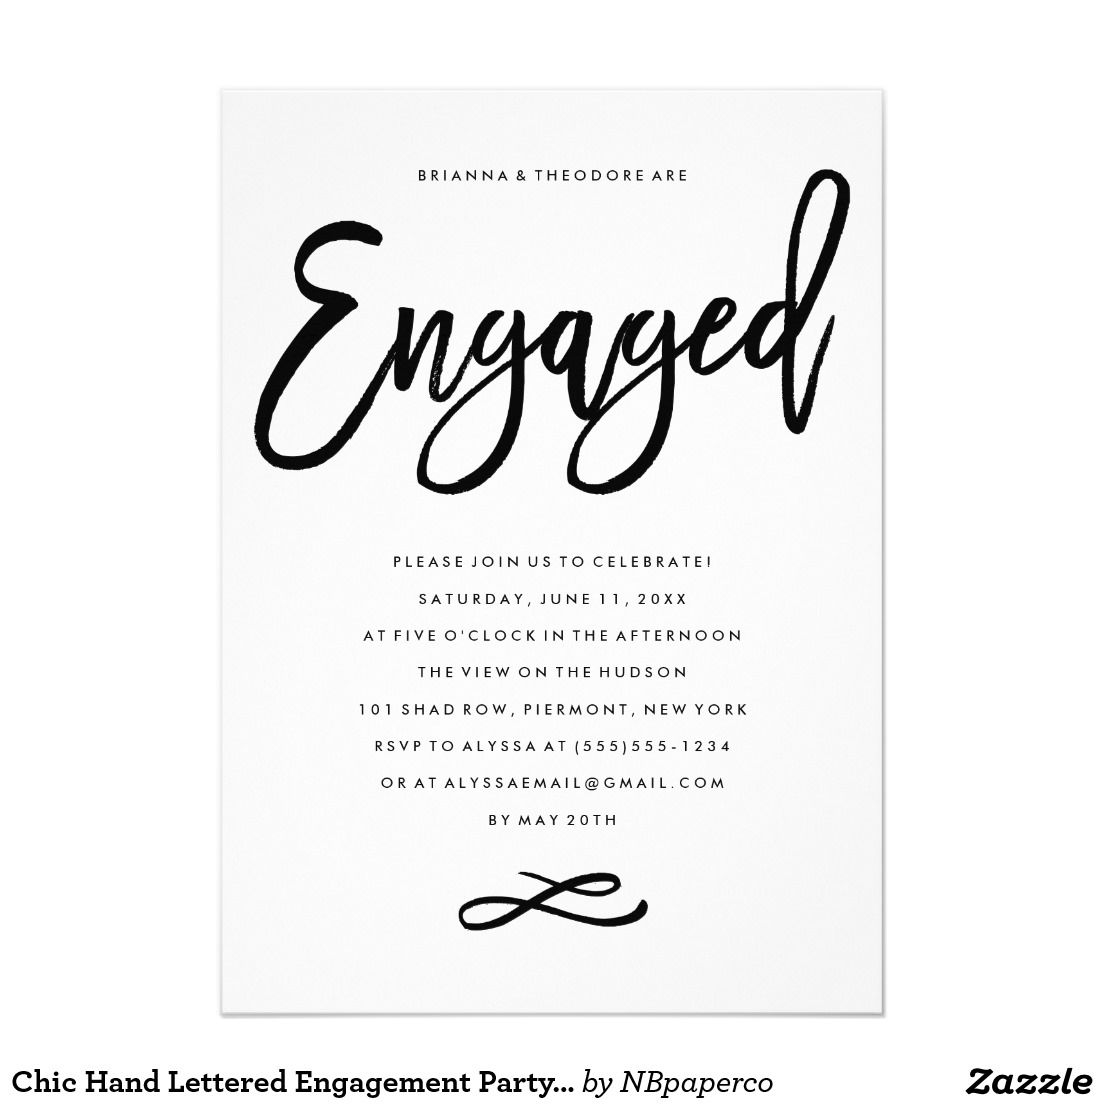 Chic Hand Lettered Engagement Party Invitation | Engagement party ...